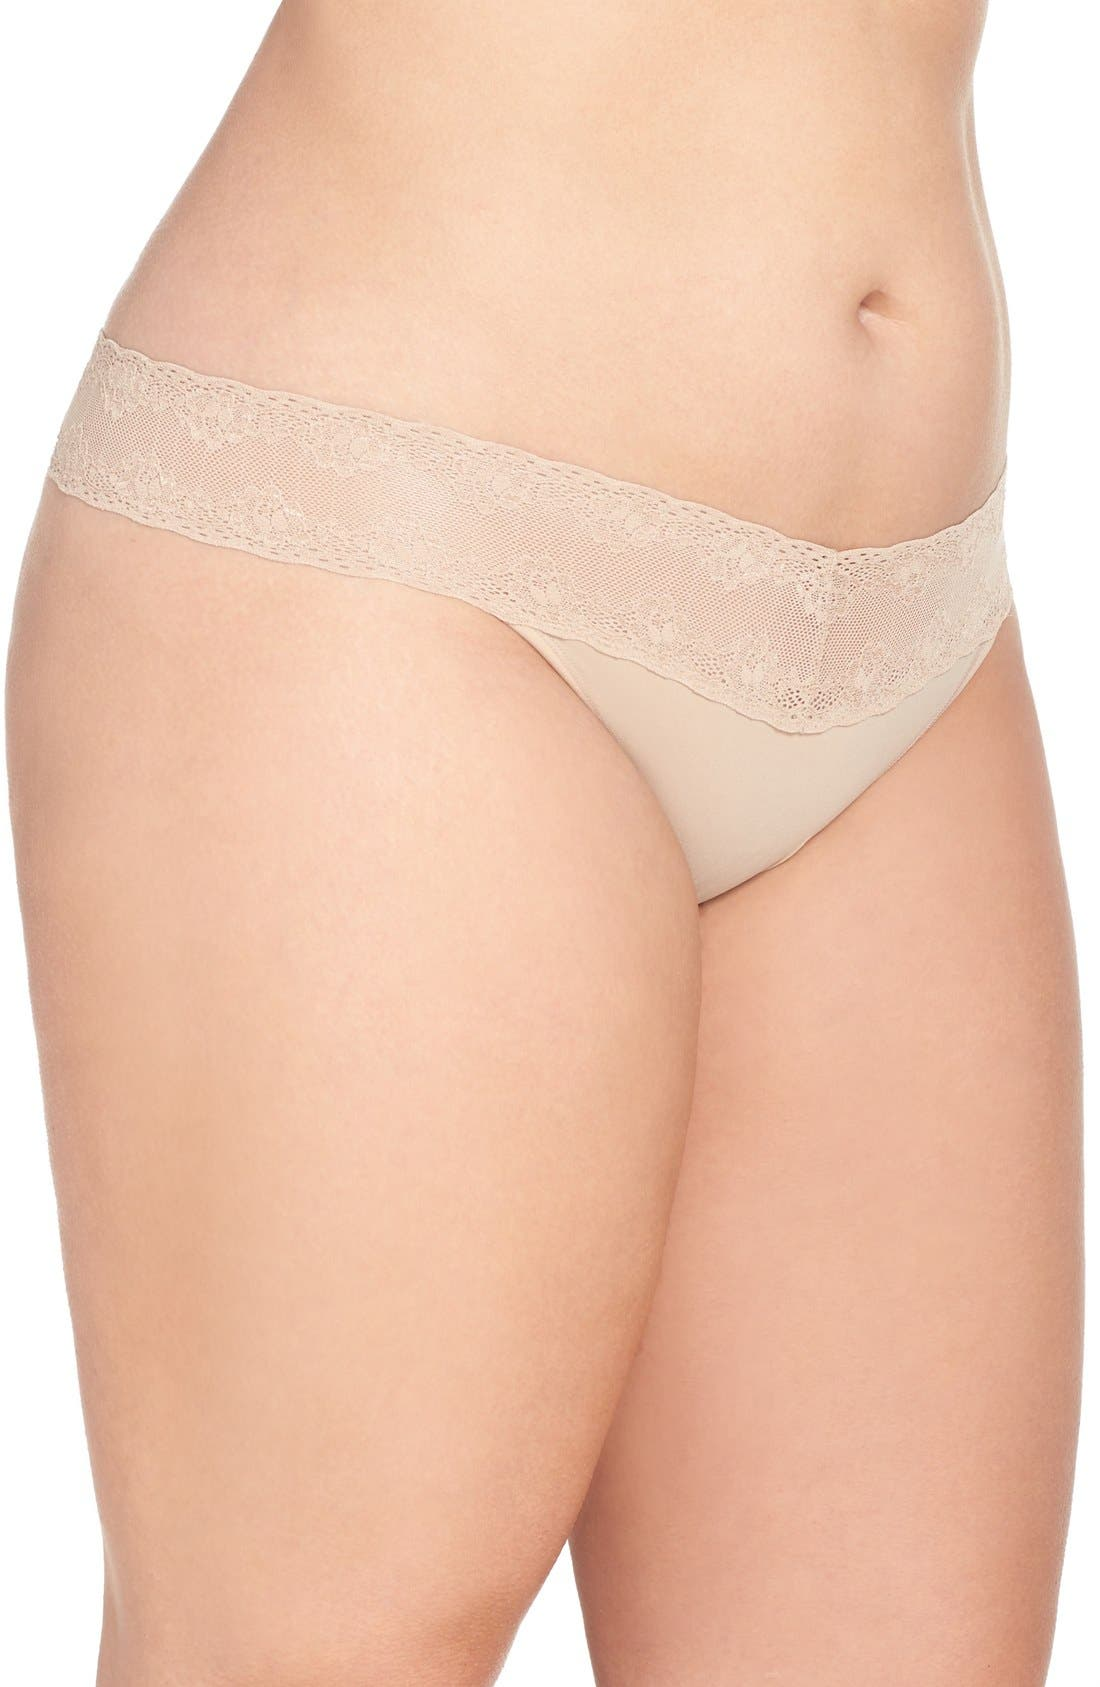 Bliss Perfection Thong,                             Alternate thumbnail 3, color,                             250